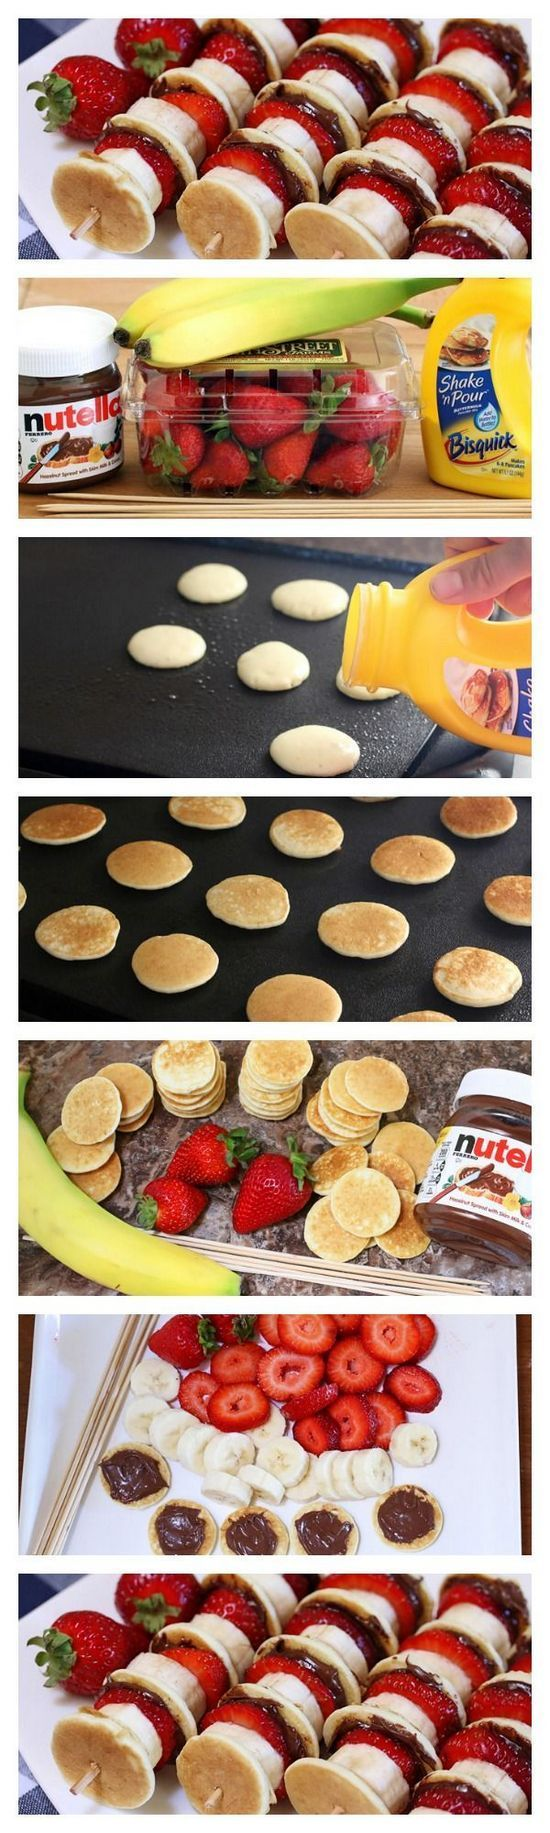 Nutella Mini Pancake Kabobs   Soft and pillowy pancakes slathered with Nutella and layered on skewers with fresh strawberries and banana. Great for breakfast or brunch!